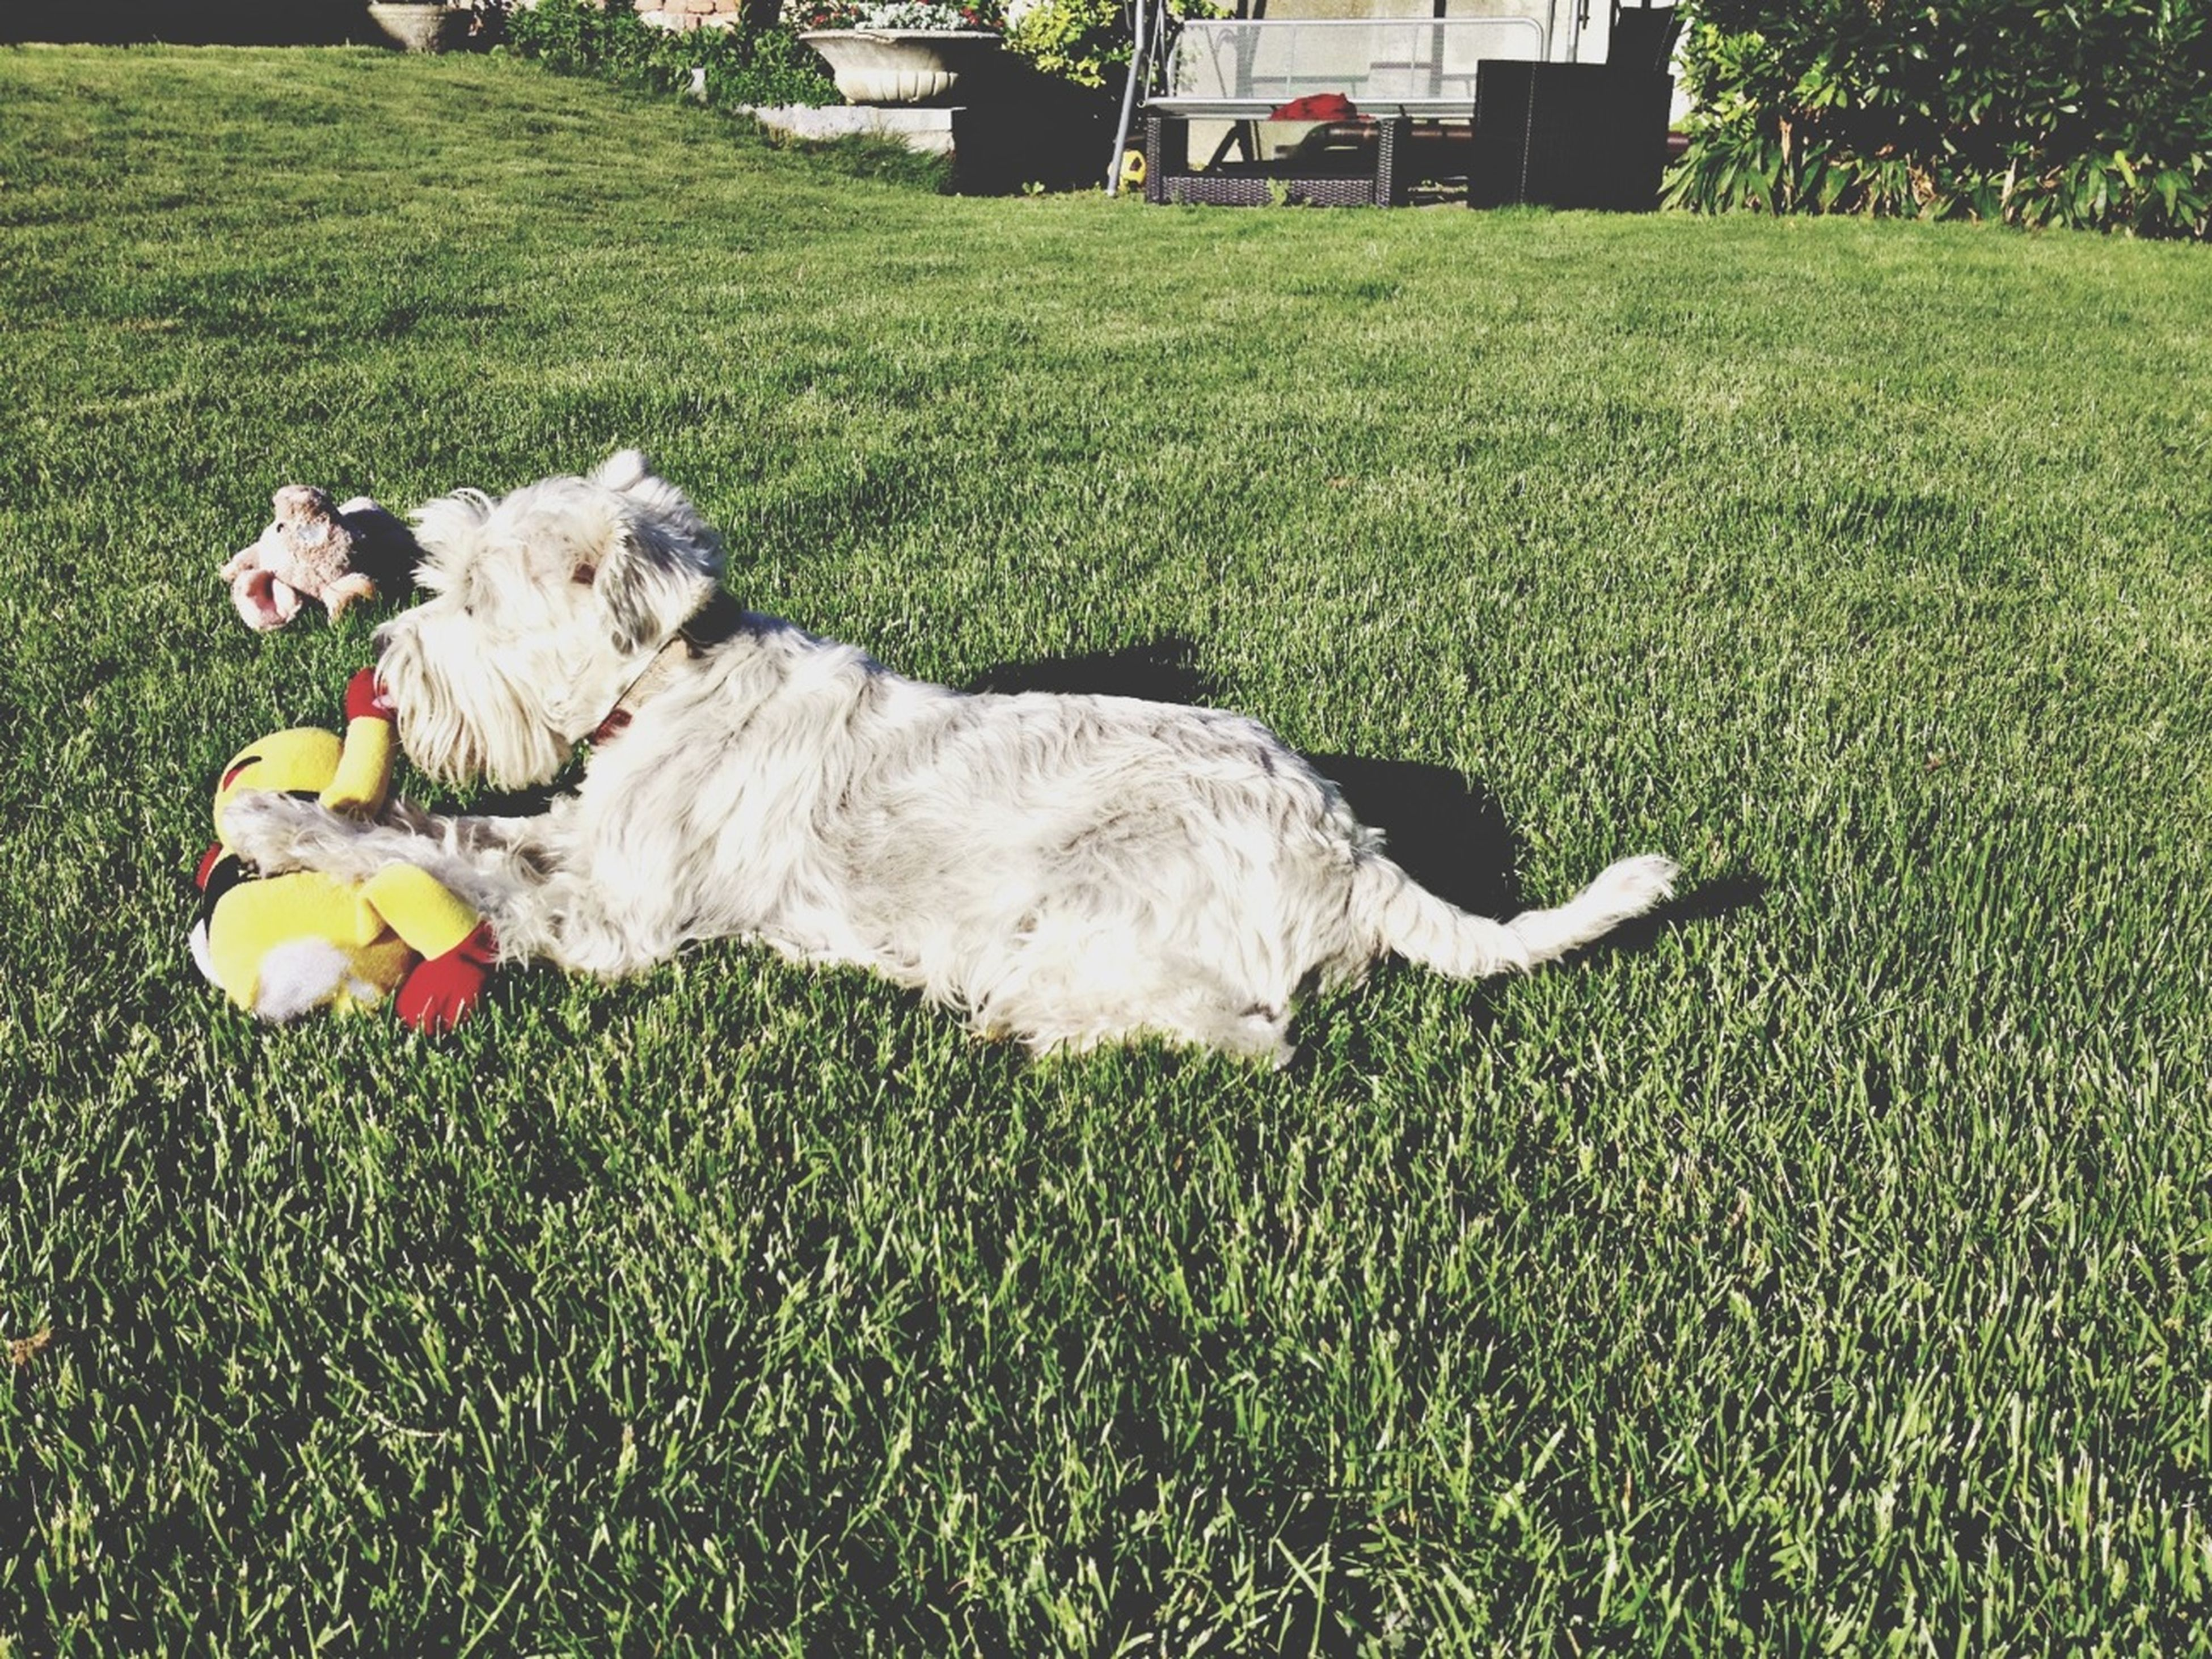 grass, animal themes, grassy, field, domestic animals, green color, one animal, lawn, mammal, dog, pets, grassland, park - man made space, nature, day, outdoors, relaxation, sunlight, full length, sheep